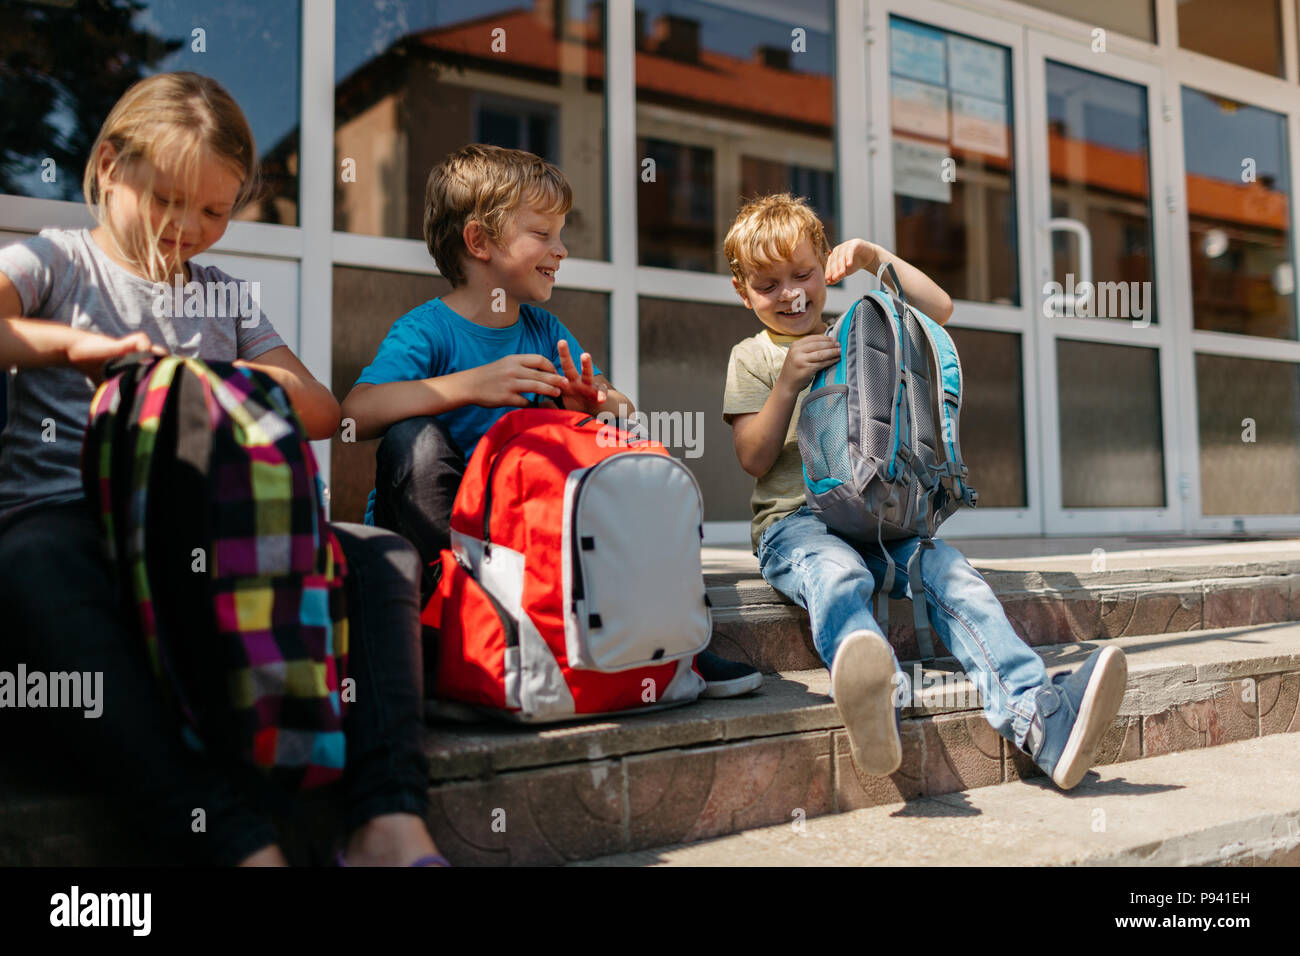 Cheerful school children during a break. Smiling children with schoolbags sitting on stairs outside school. Stock Photo